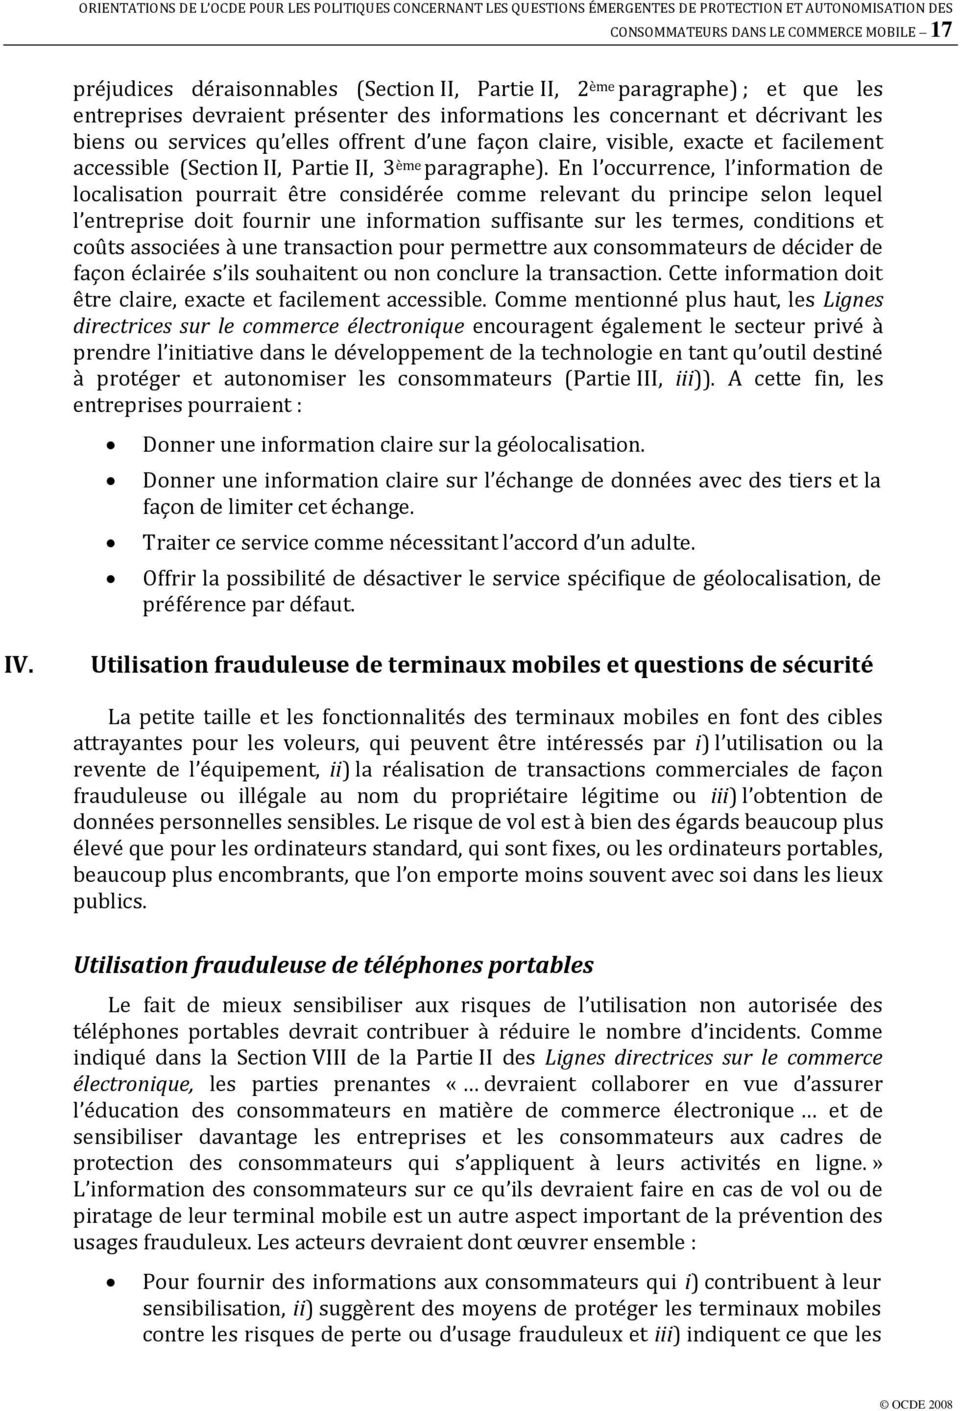 facilement accessible (Section II, Partie II, 3 ème paragraphe).